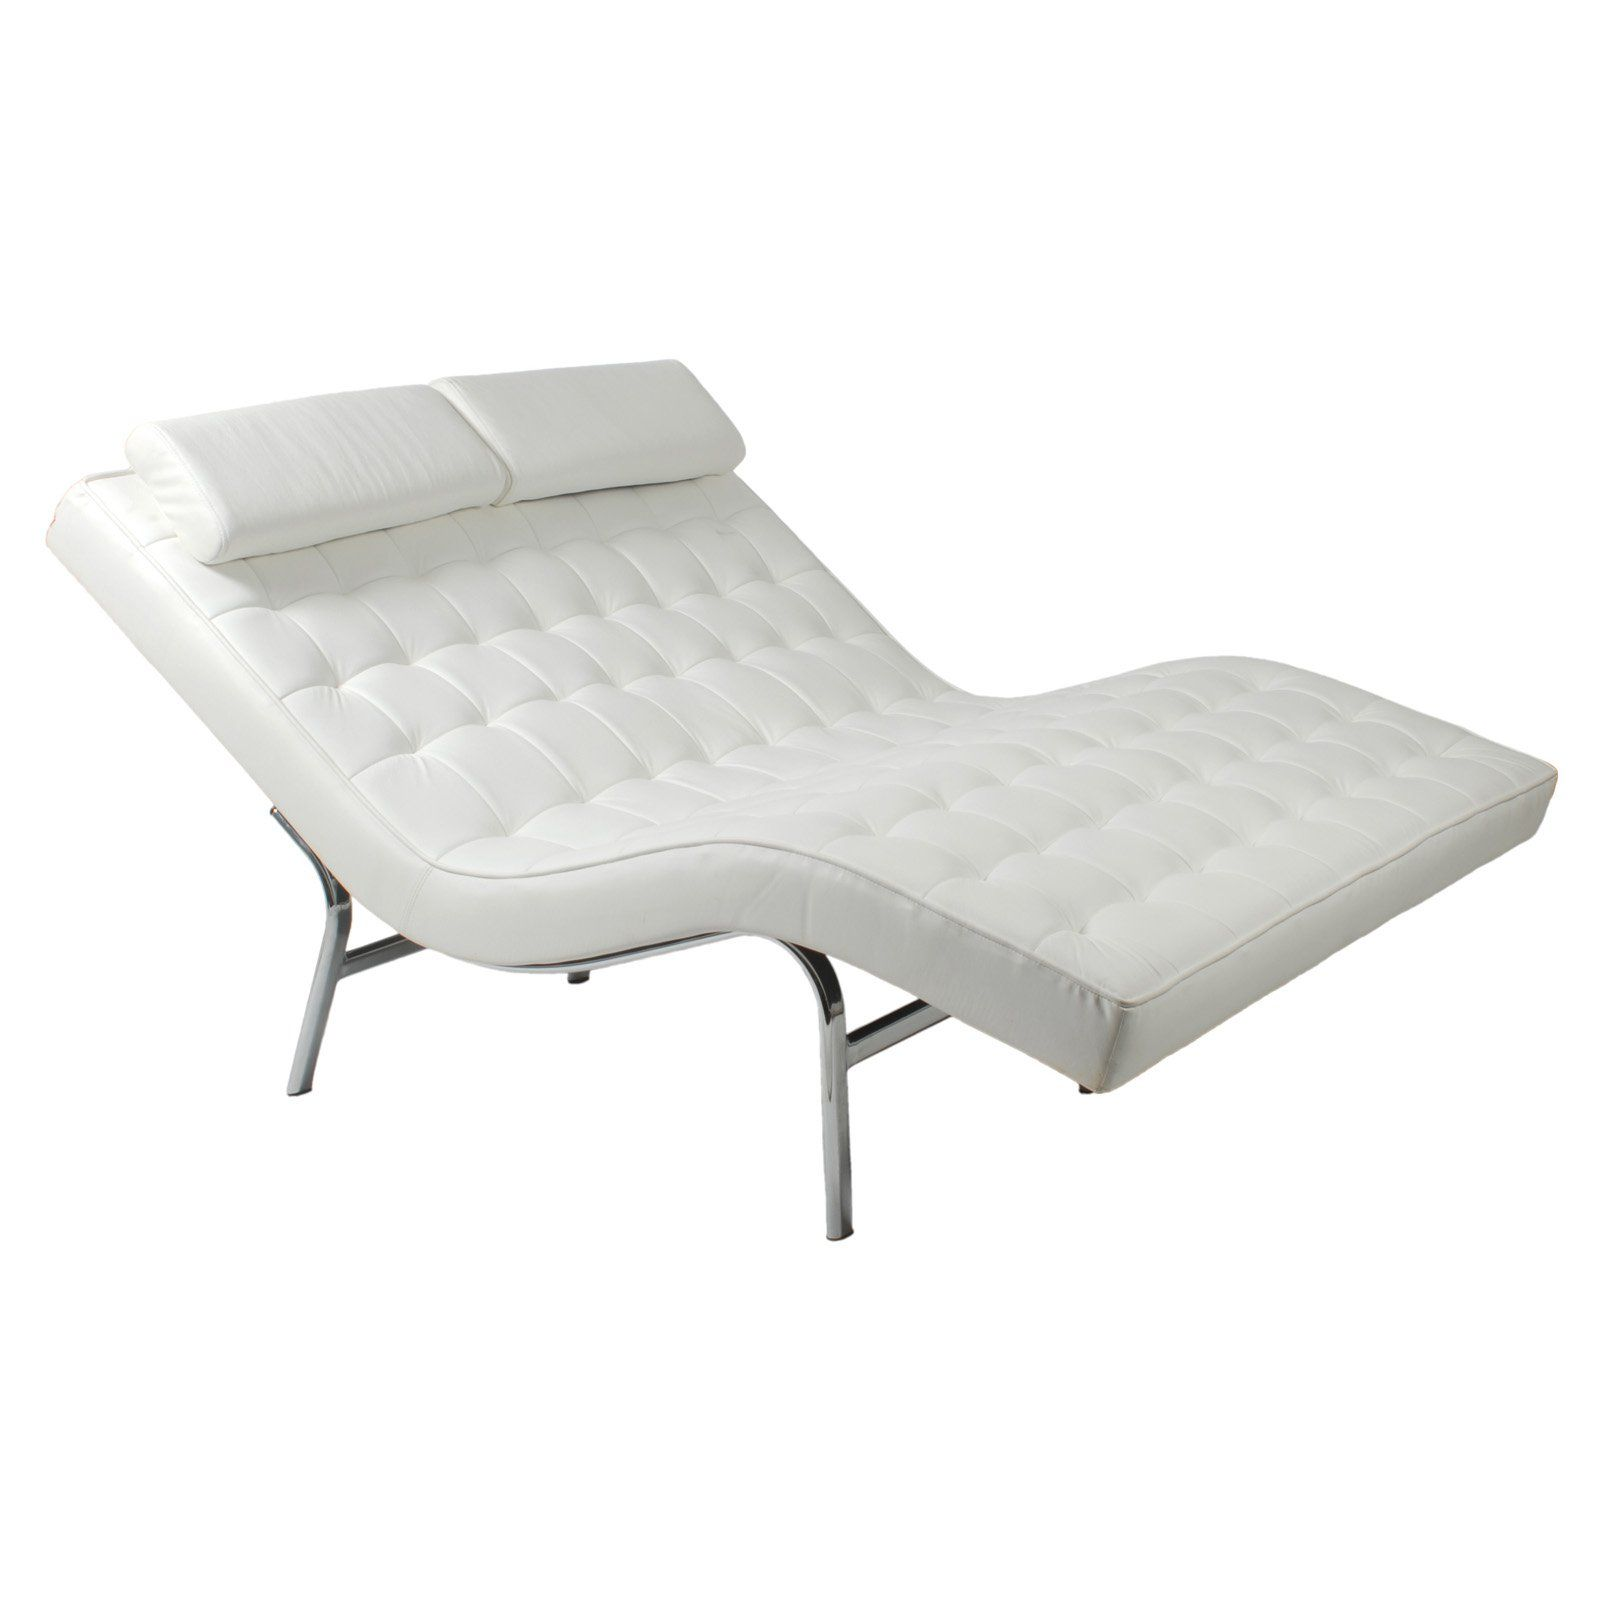 Euro Style Valencia Double Chaise Lounge Www Hayneedle Com Lounge Sessel Liegestuhl Sessel Weiss